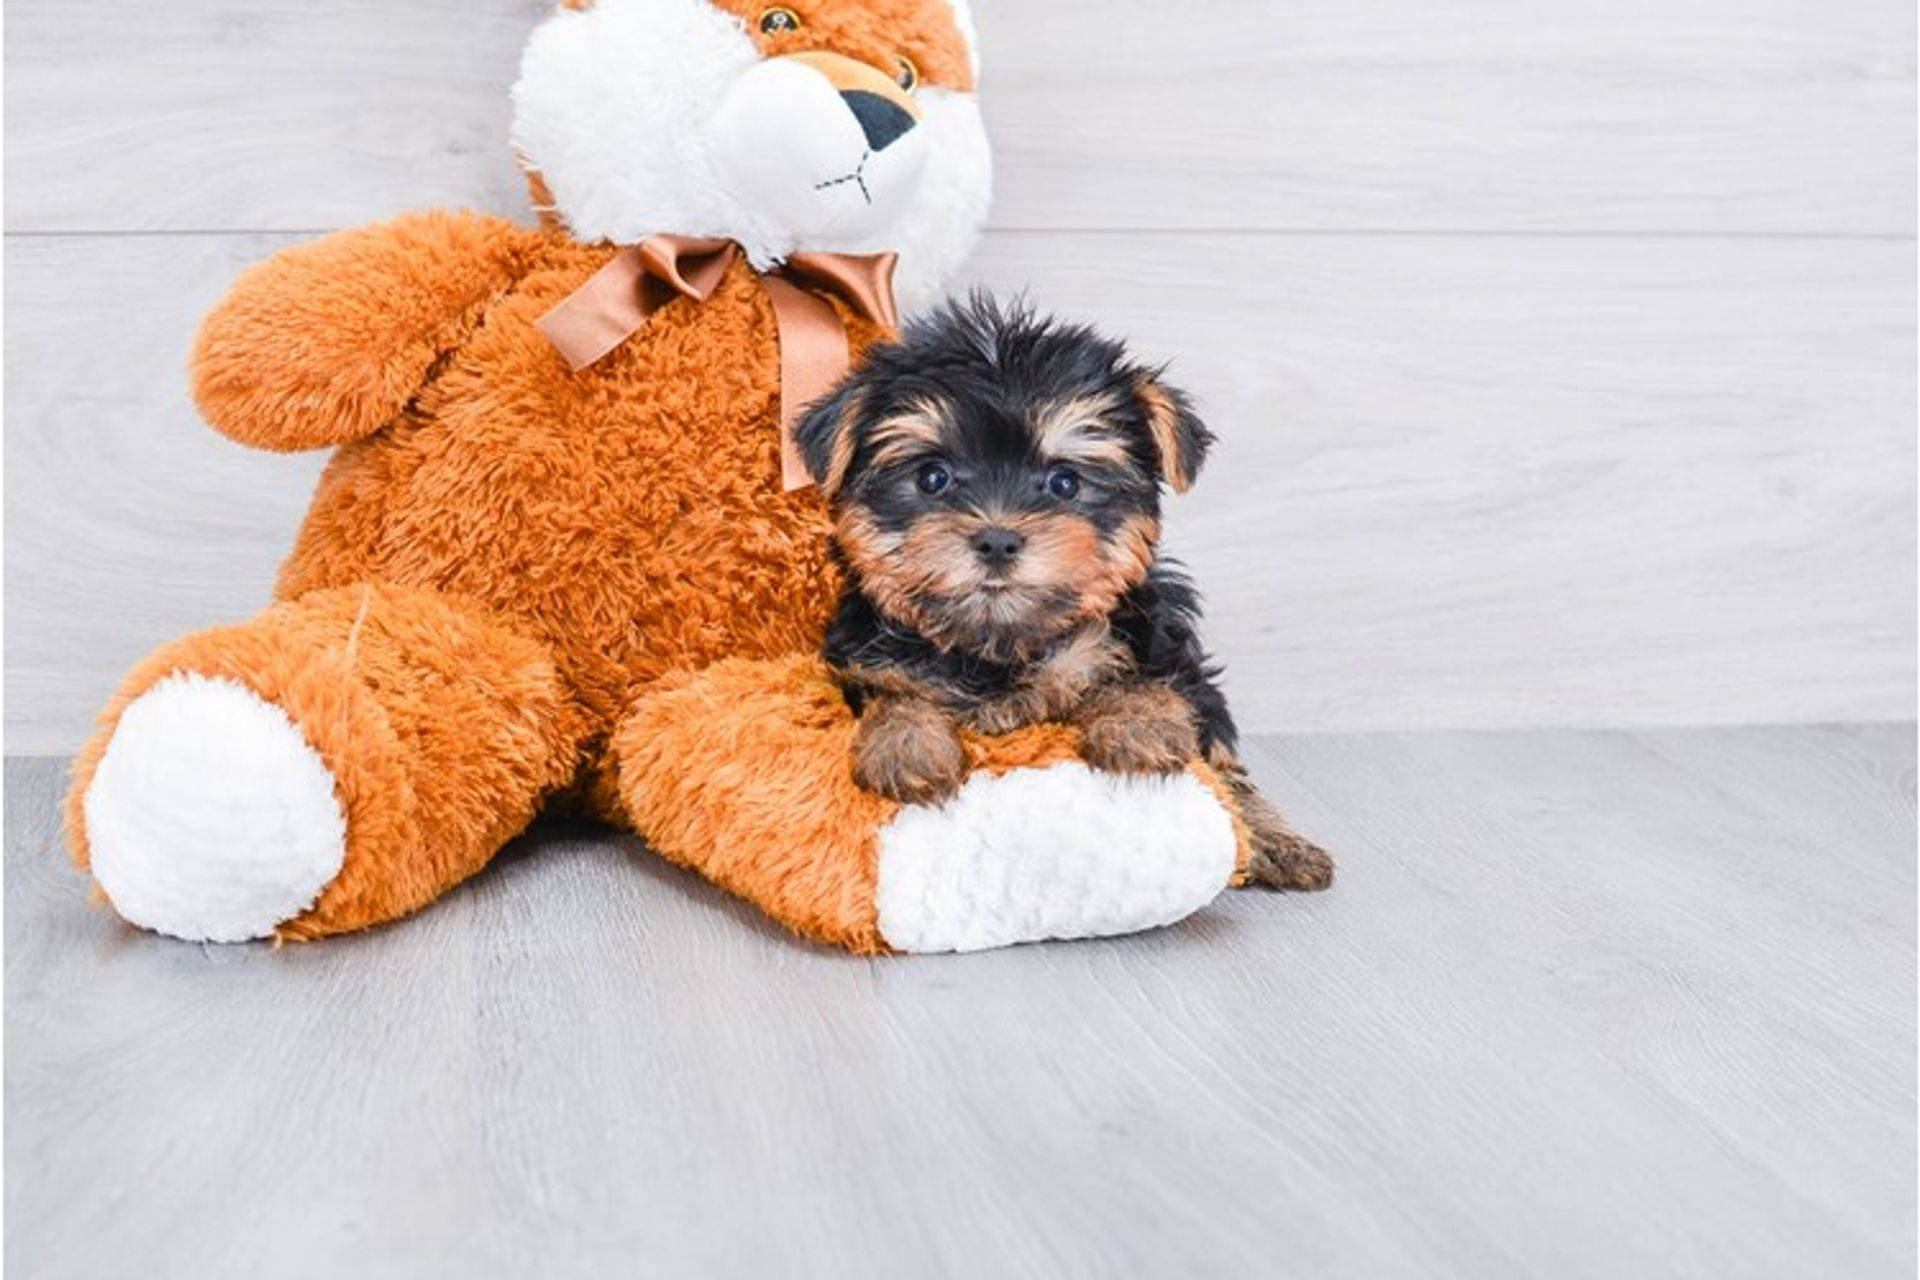 teacup yorkie puppy, teacup yorkie puppies, maltese puppies, teacup maltese puppies